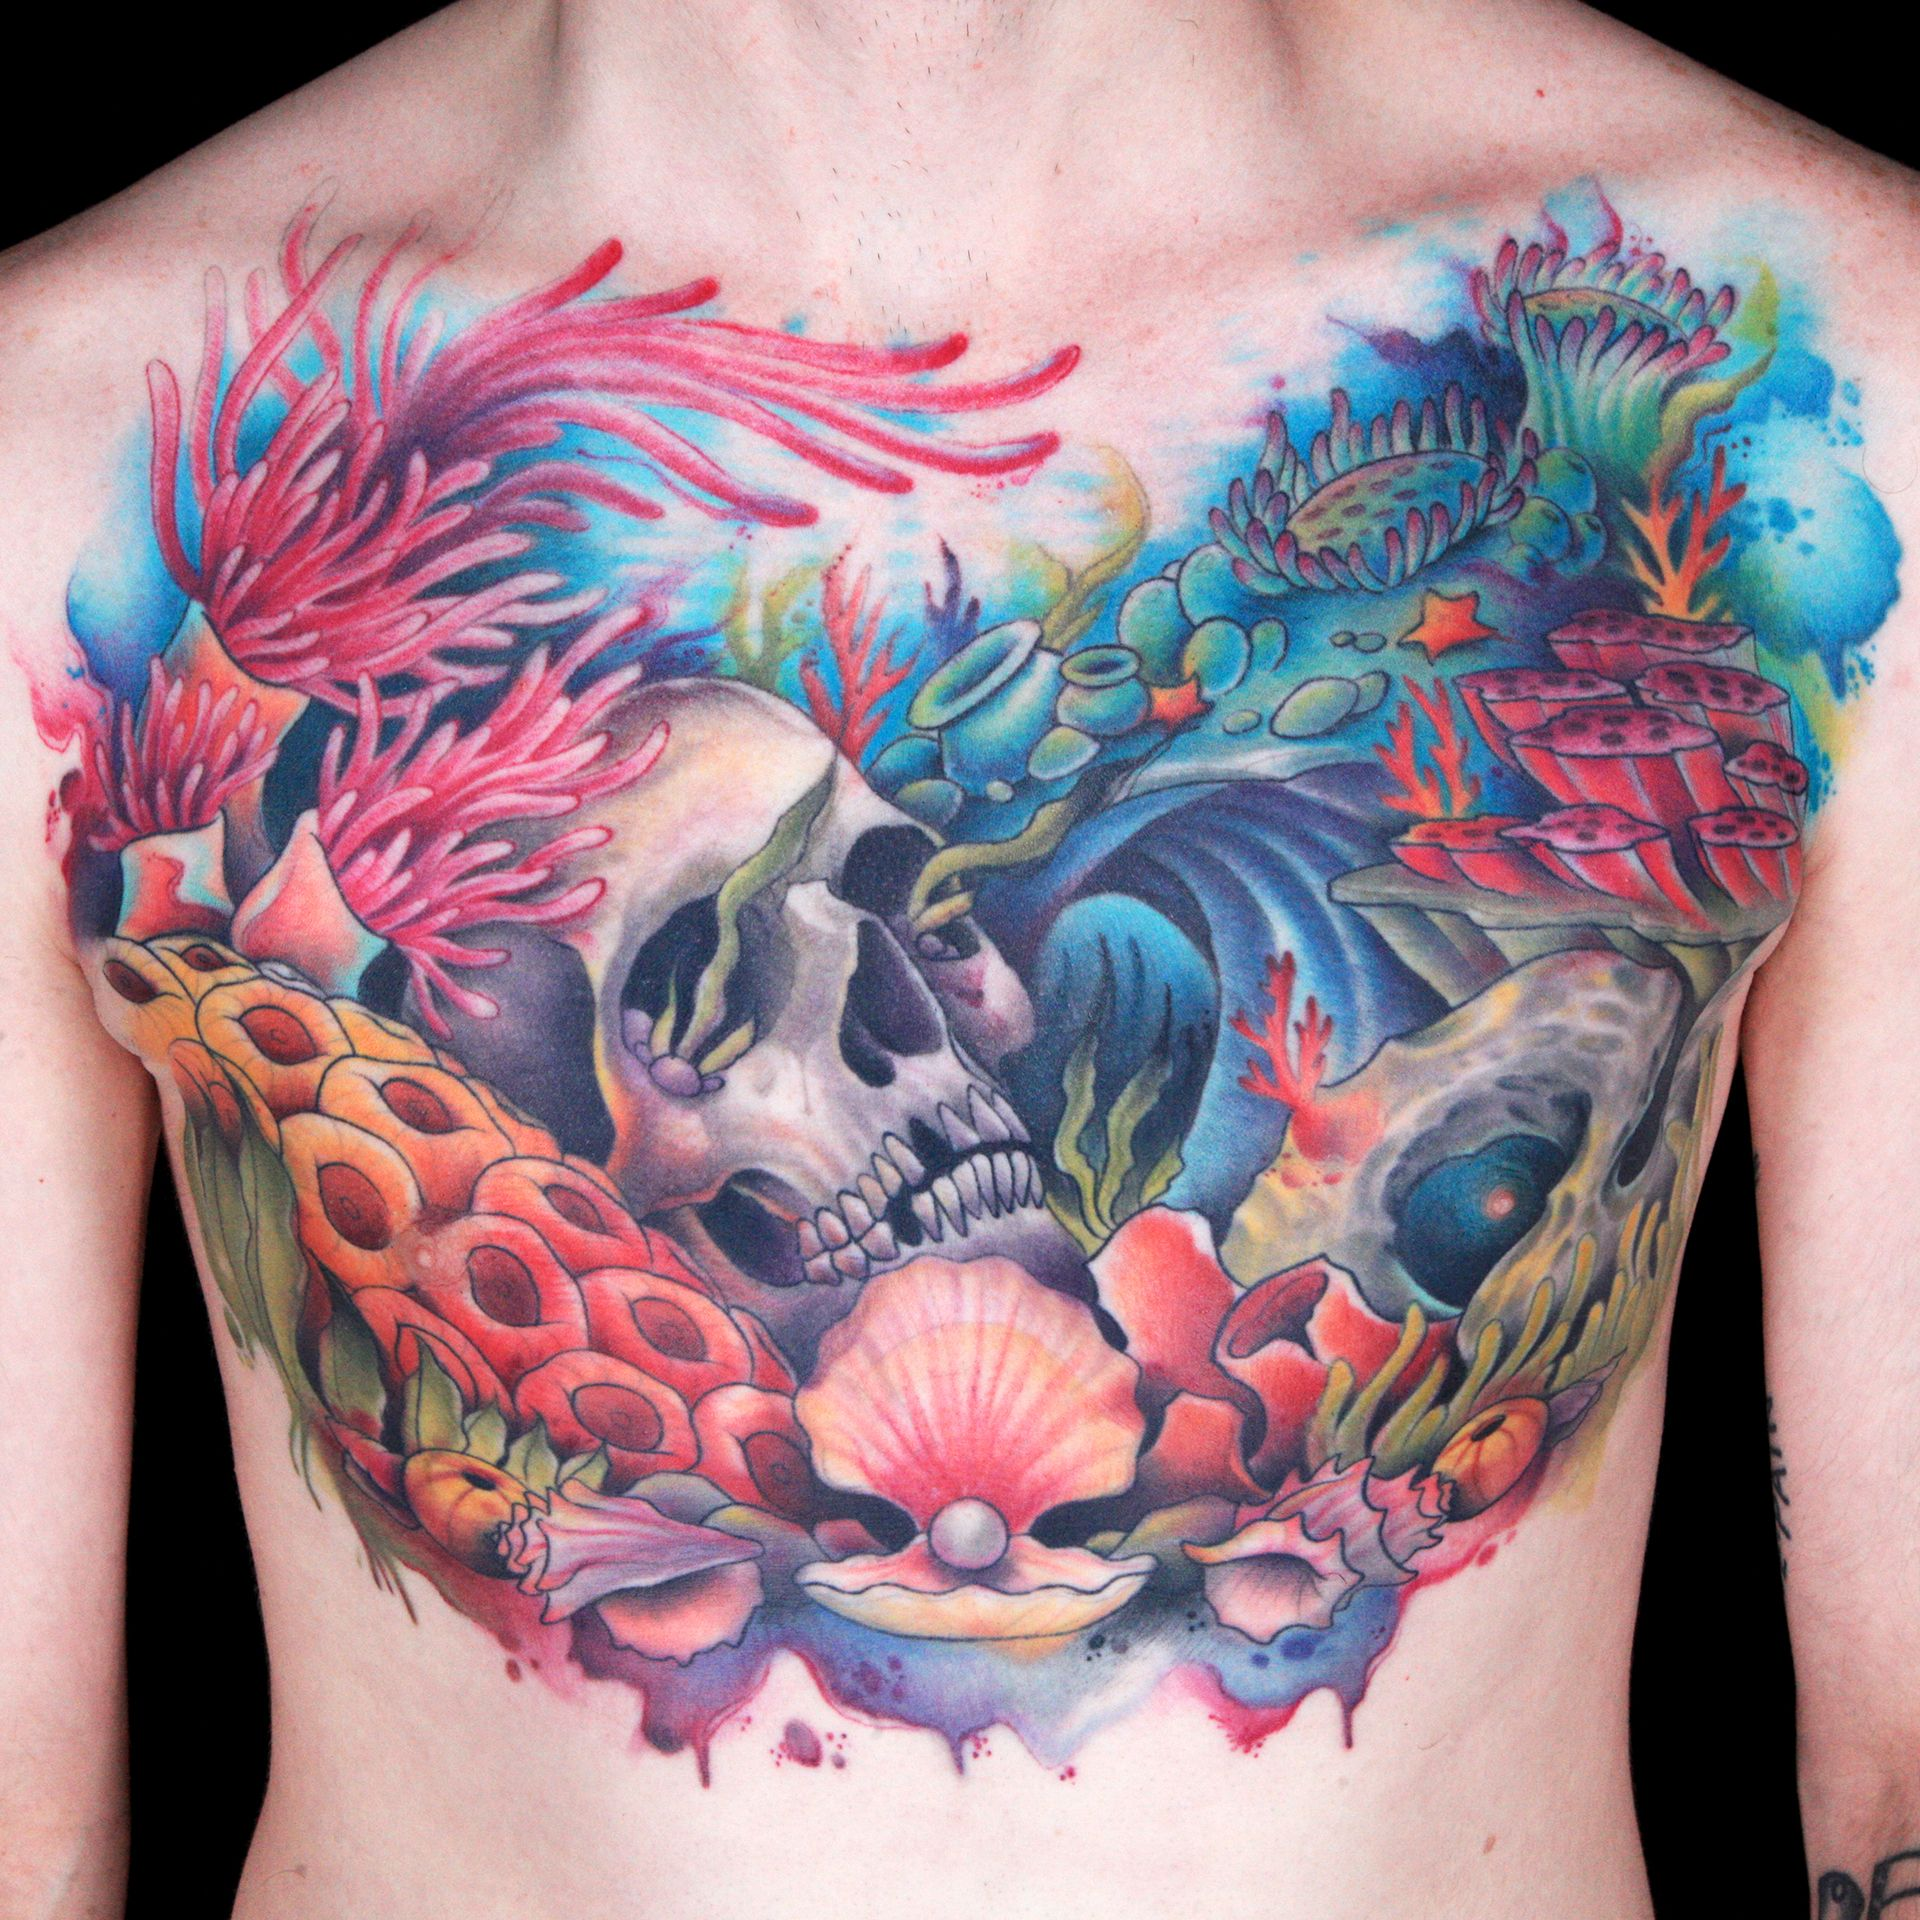 24 Hour Master Canvases Ink Master Ideas And Designs